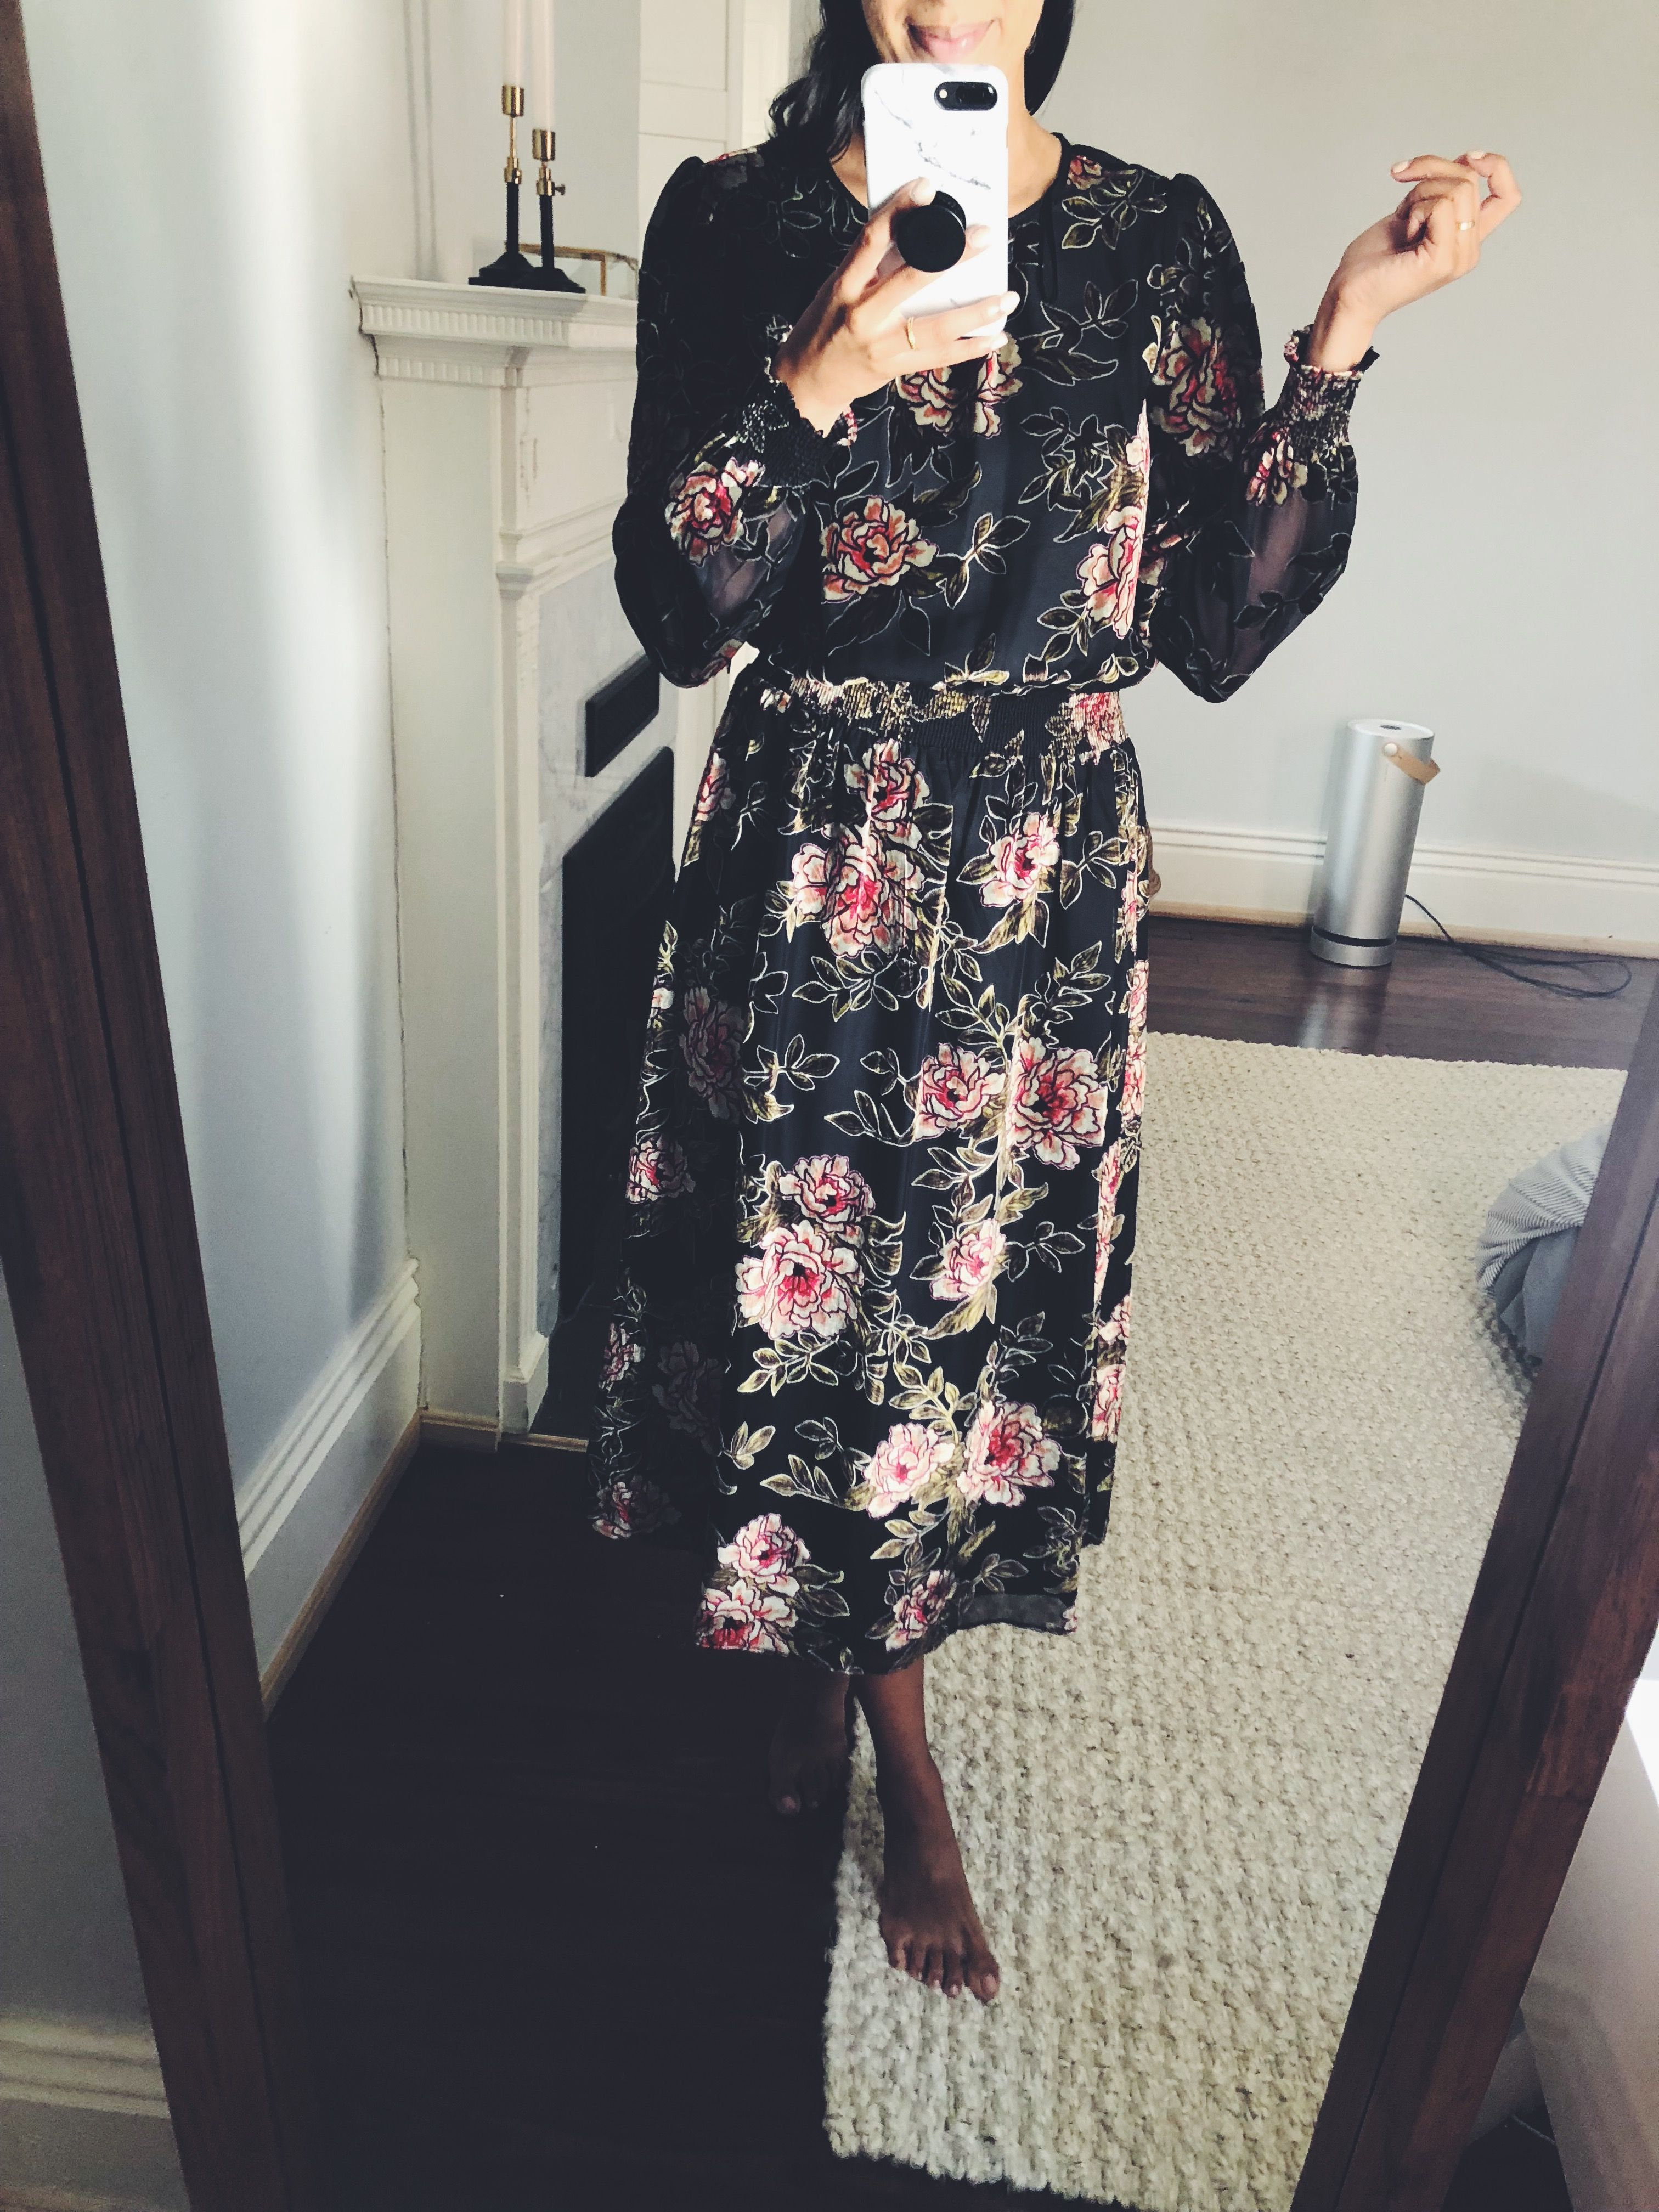 Fashion style 10 wedding best guest outfits design for lady